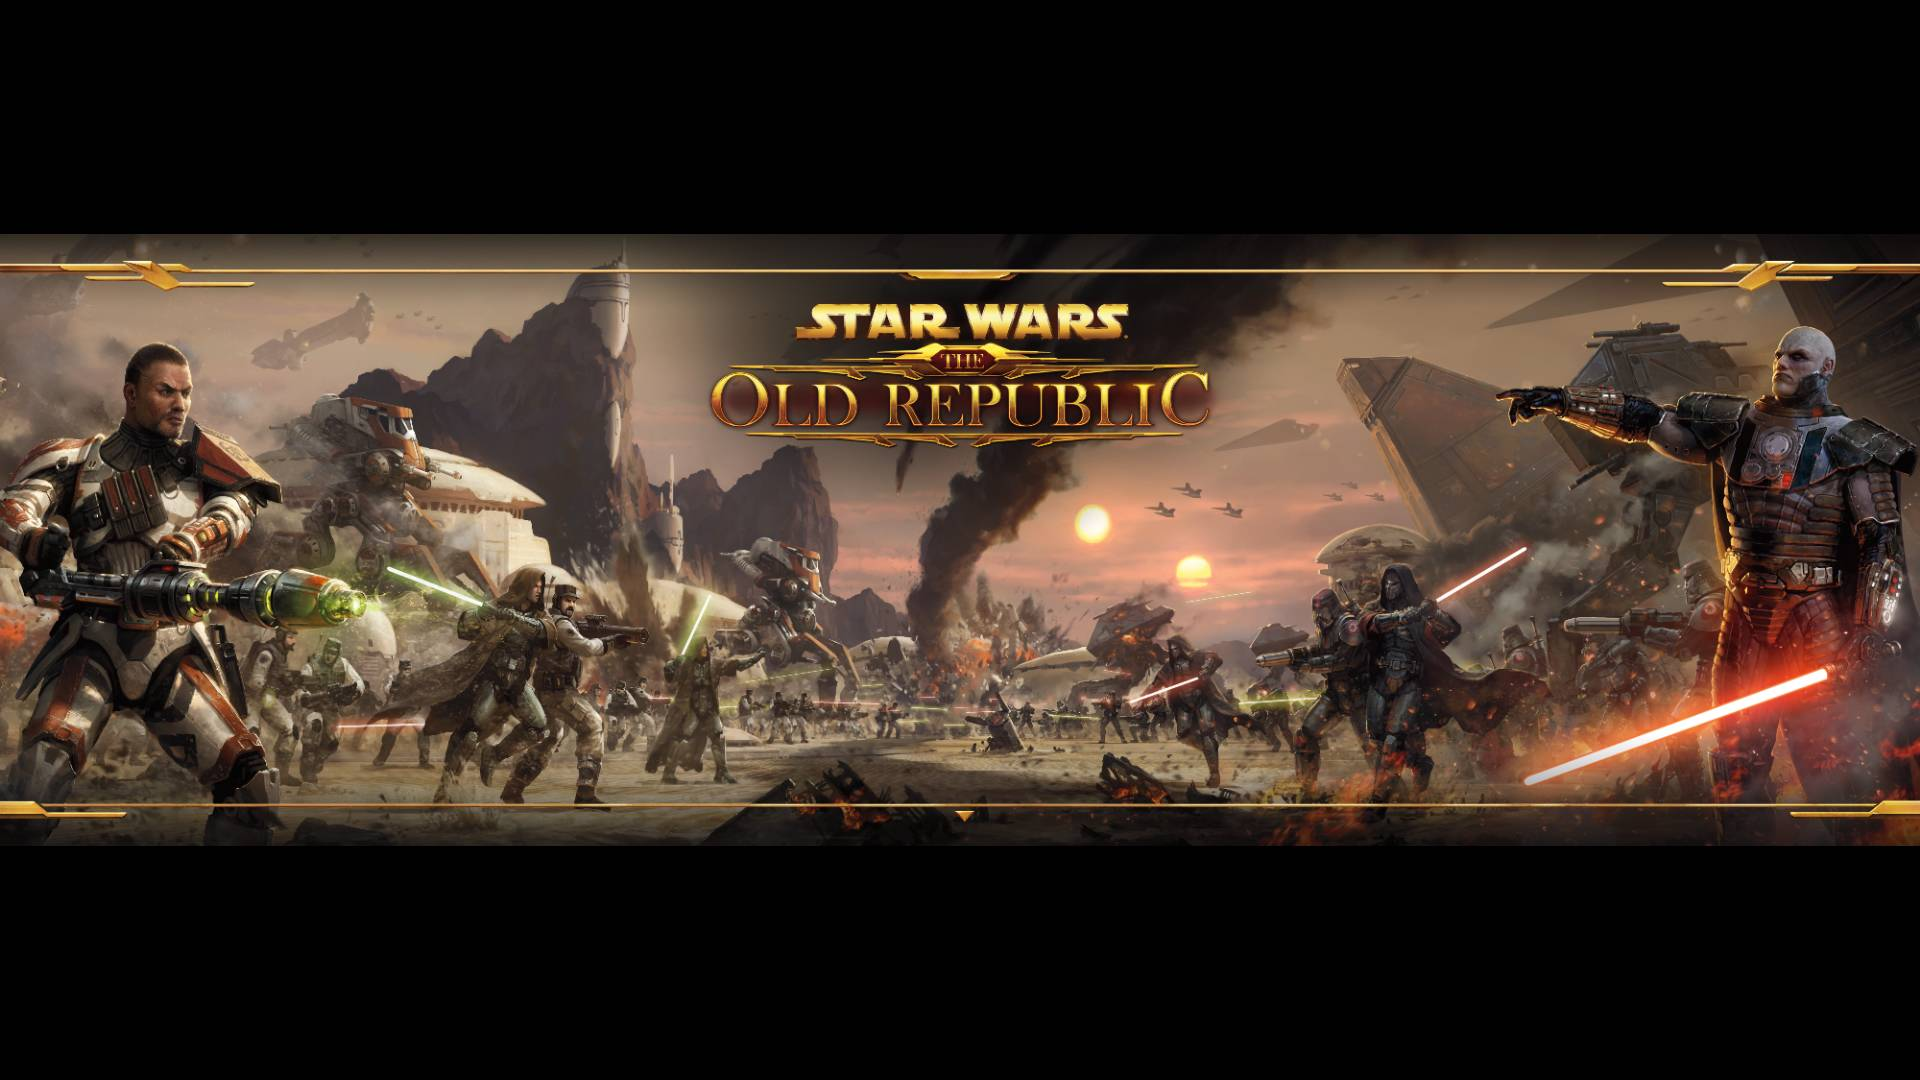 Star Wars The Old Republic   Wallpaper Gallery 1920x1080